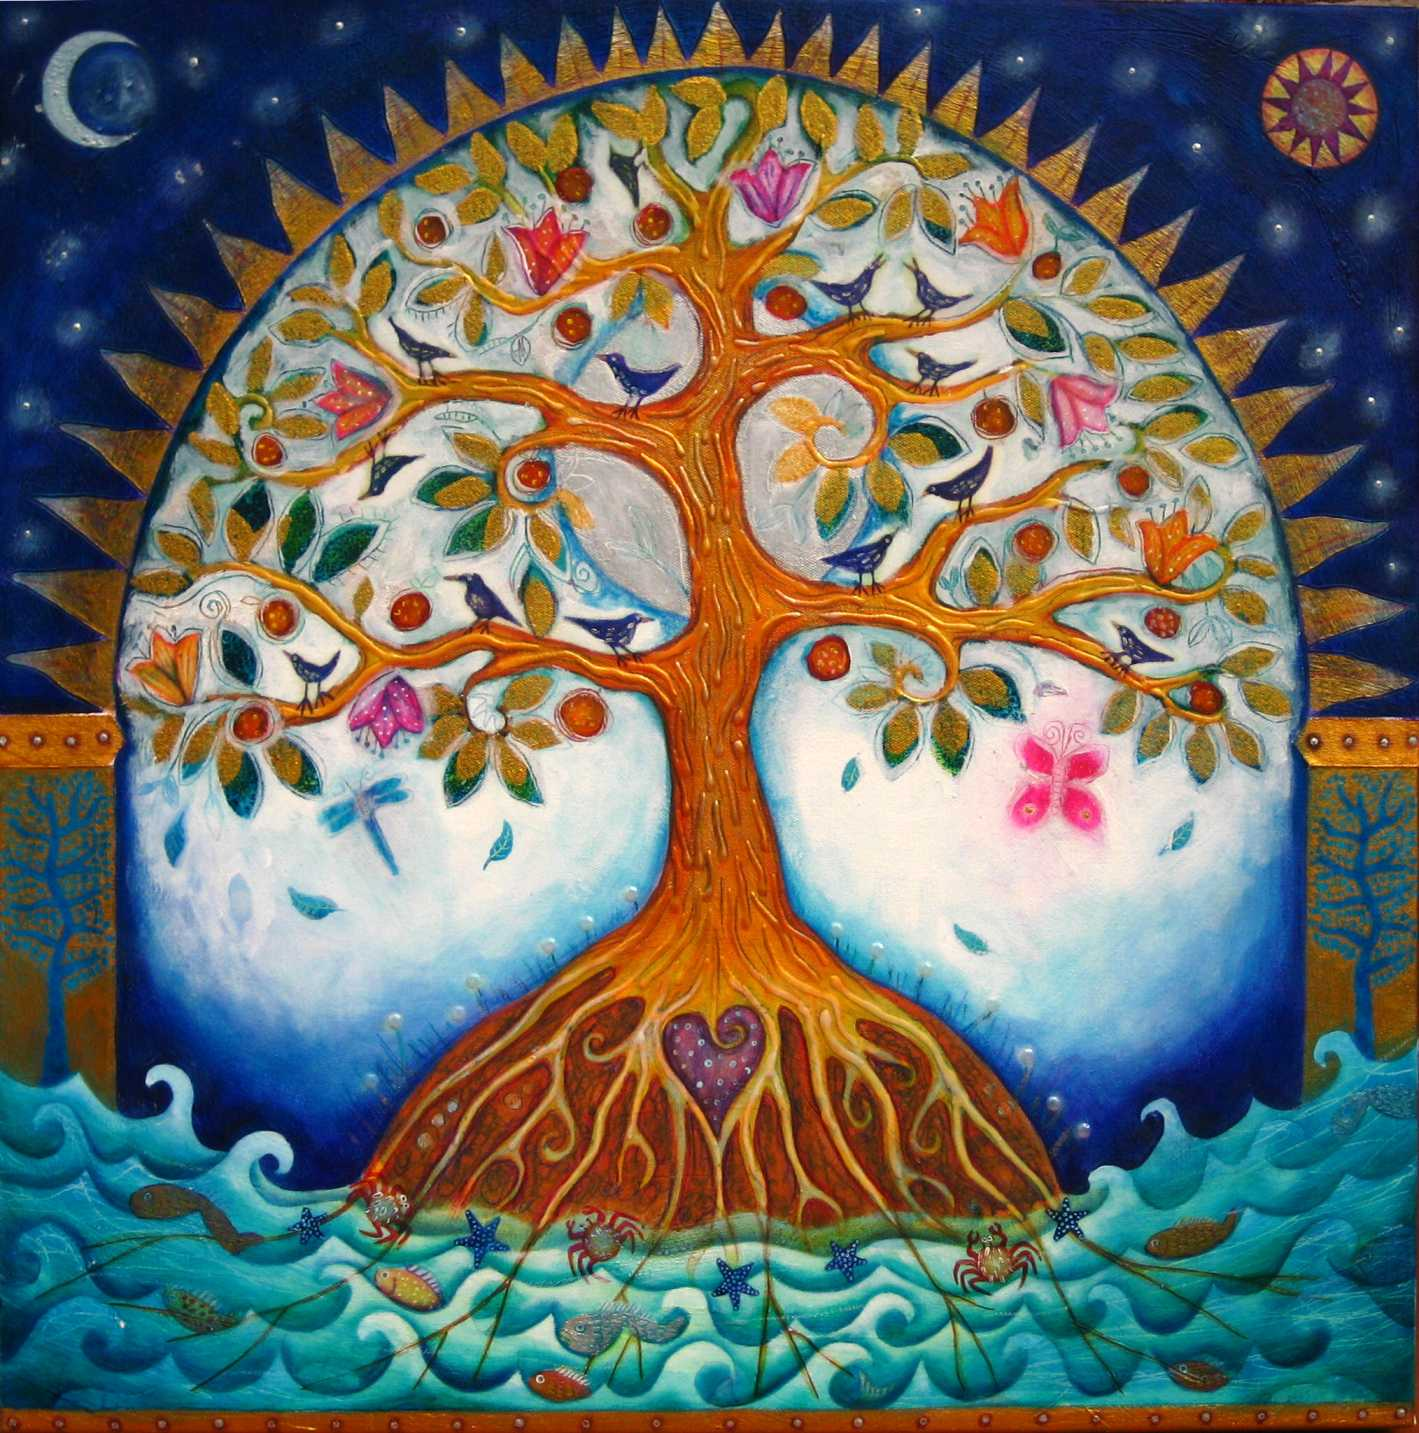 Meditations following Easter Sunday with themes about the Tree of Life